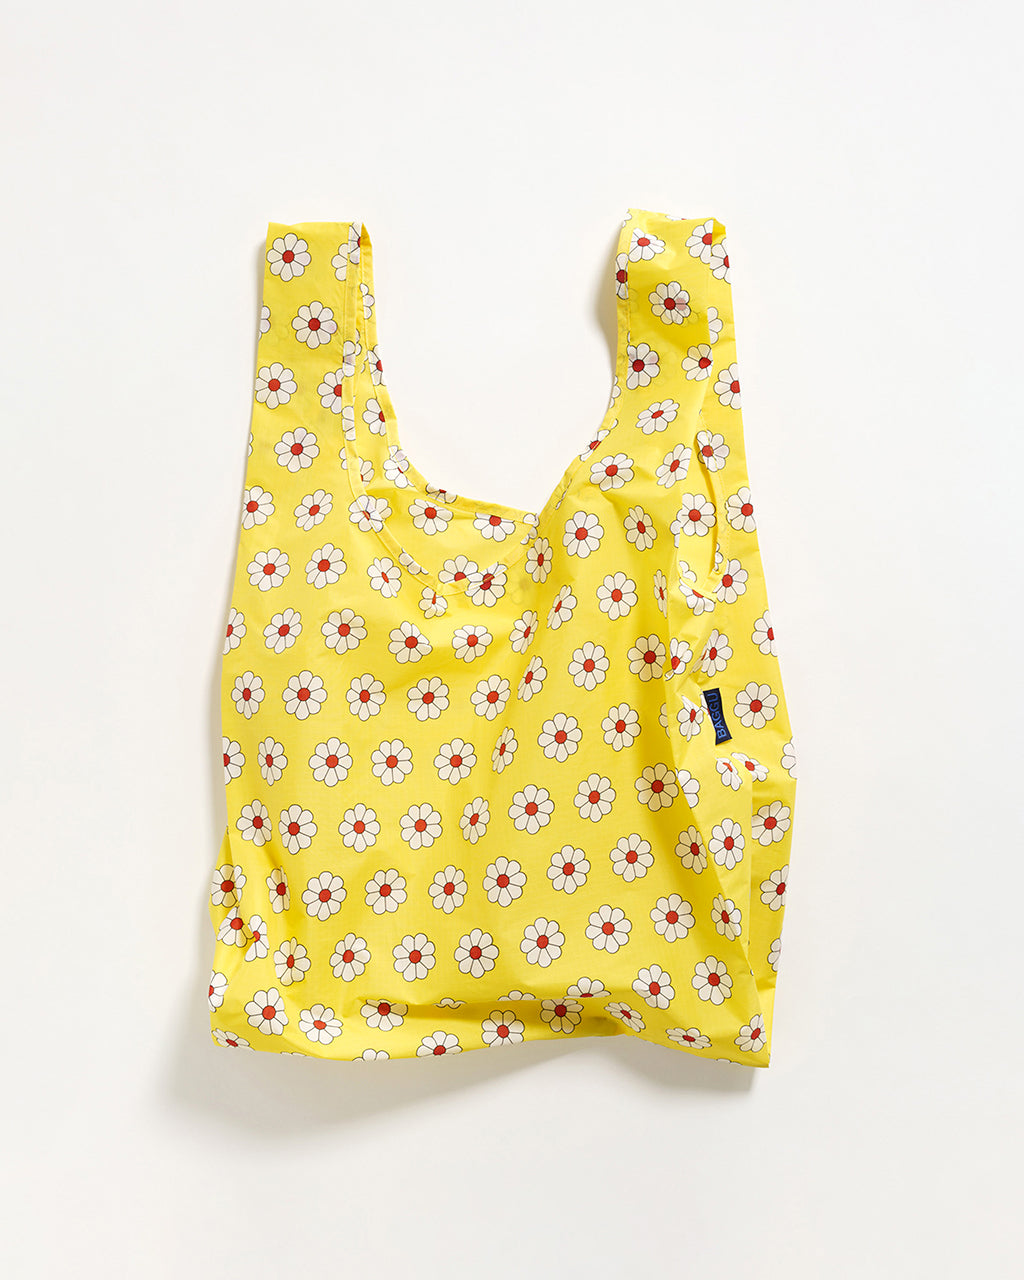 yellow nylon bag with red and white flowers in a repeating pattern